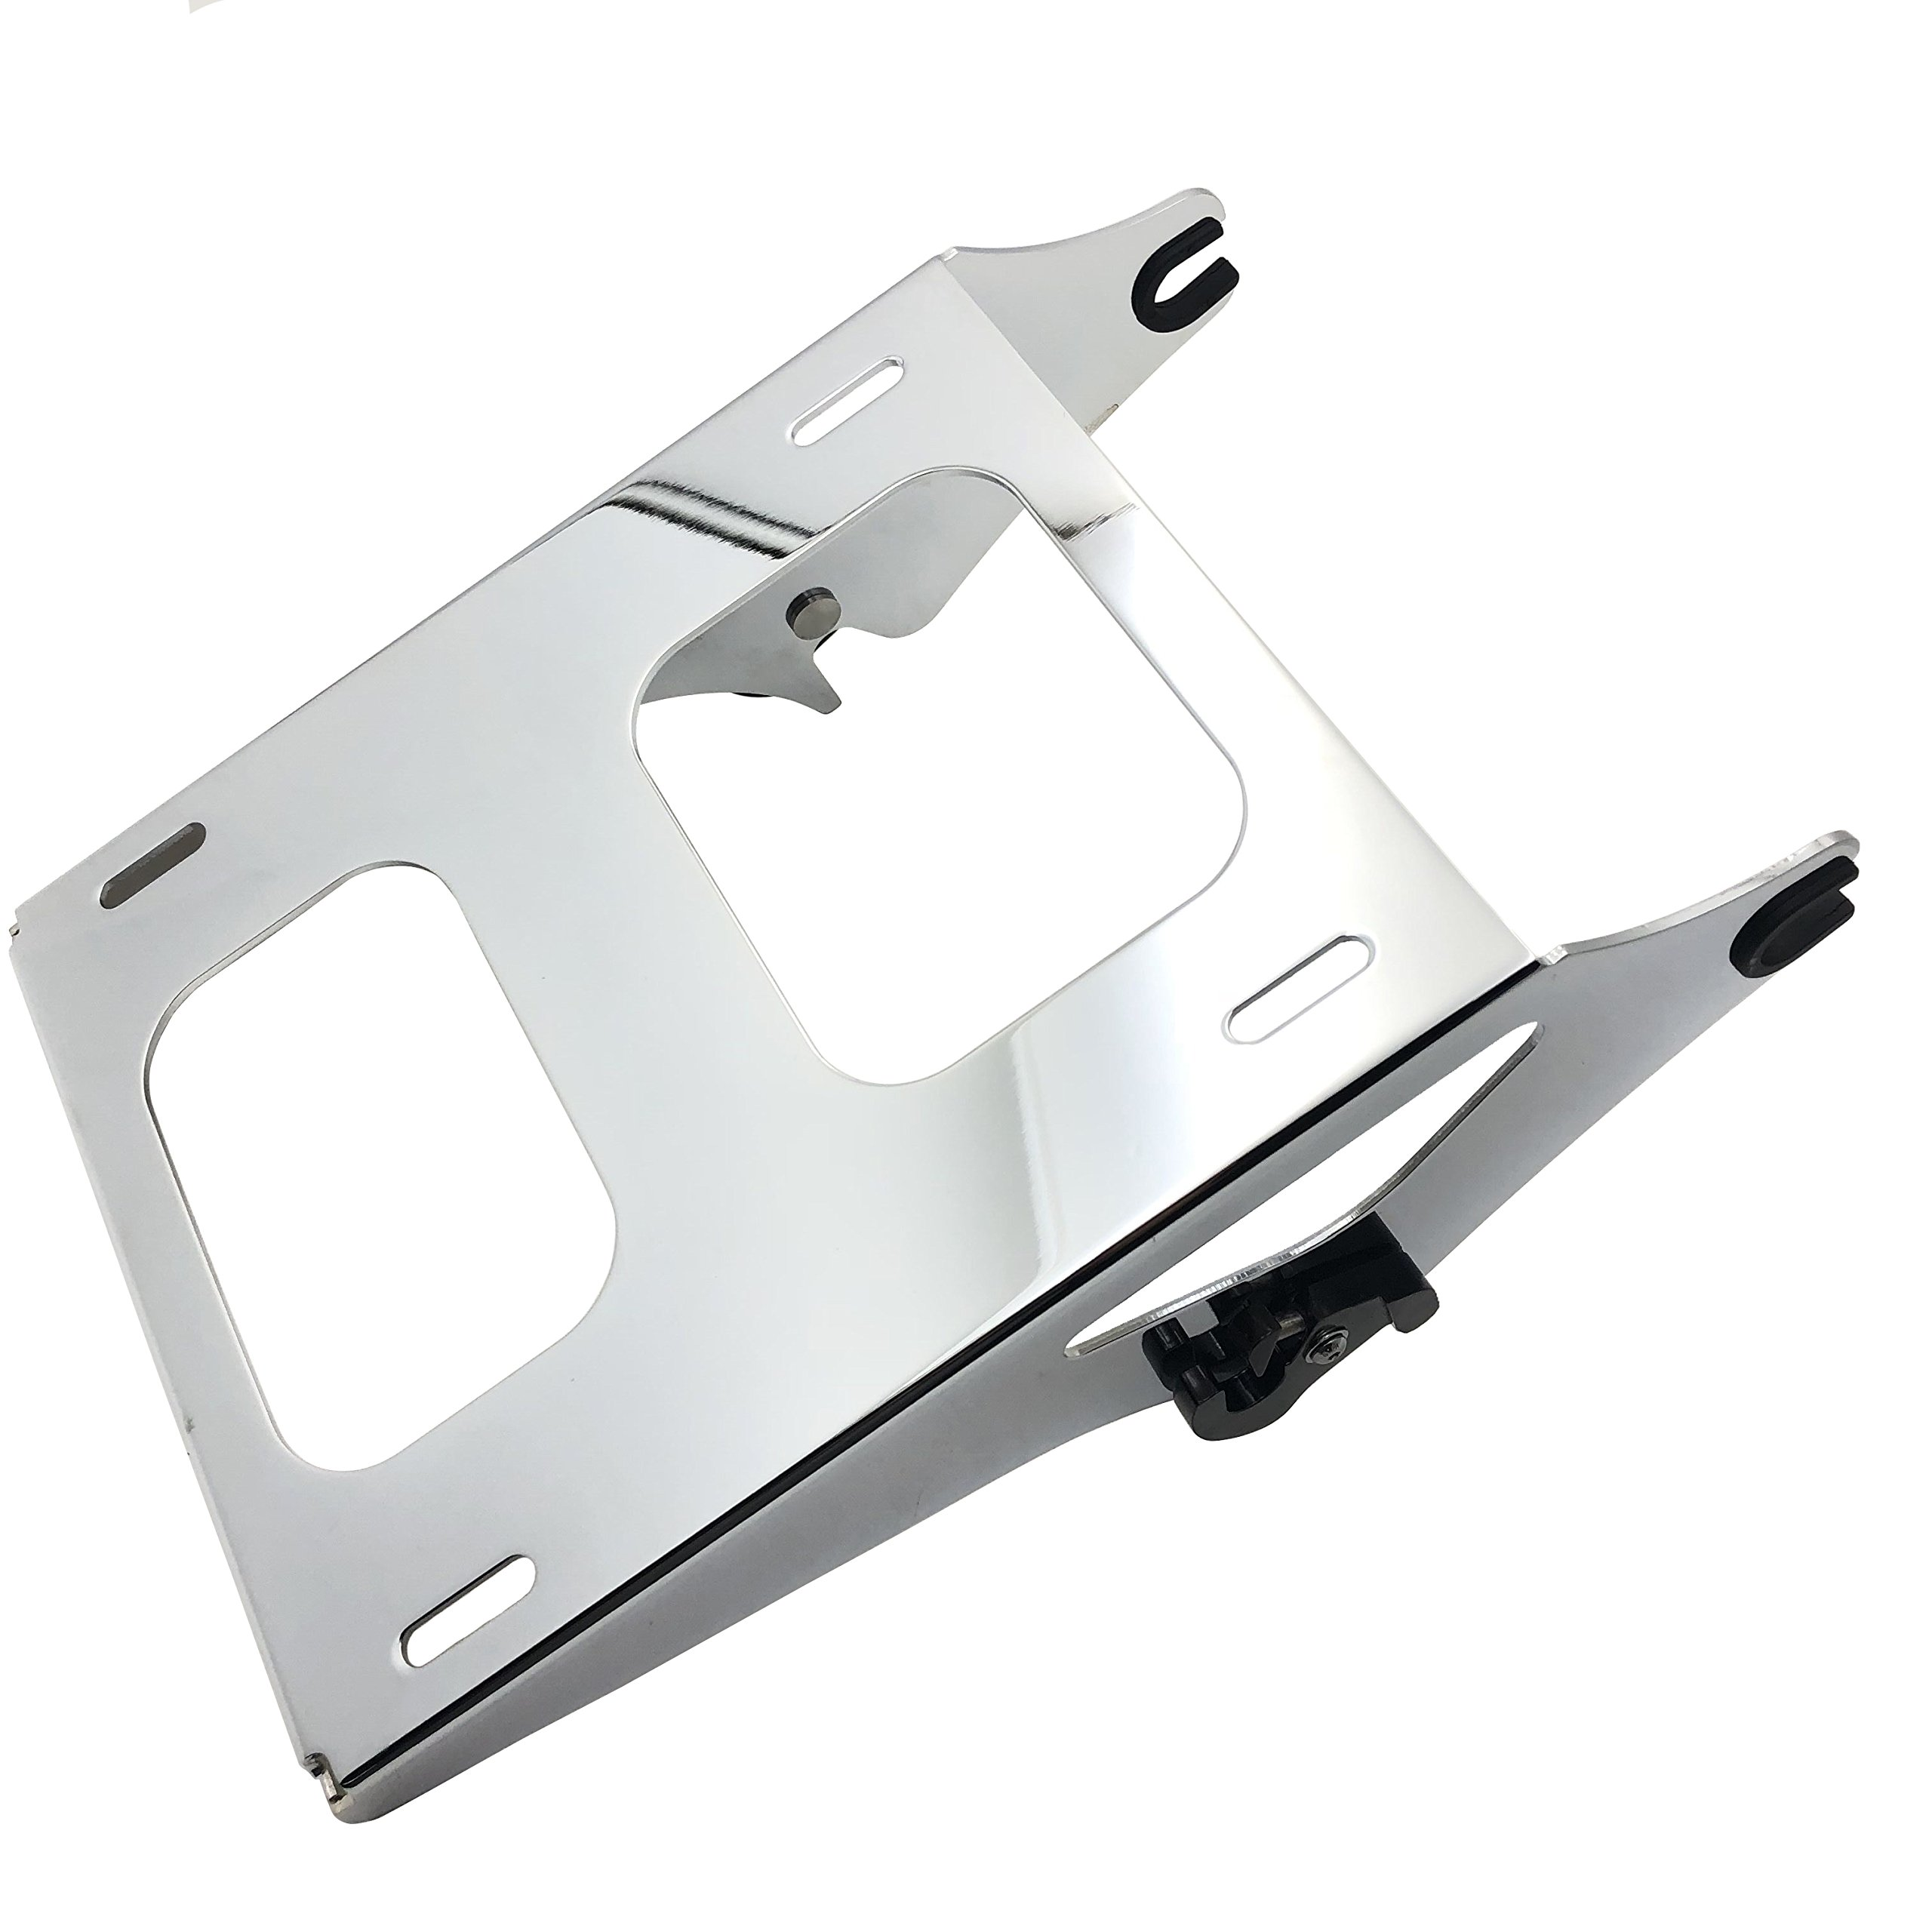 HTT Chrome Detachable 2 Two Up Tour Pak Pack Mounting Luggage Rack For Harley Touring Road King Street Glide Road Glide 2014-2016